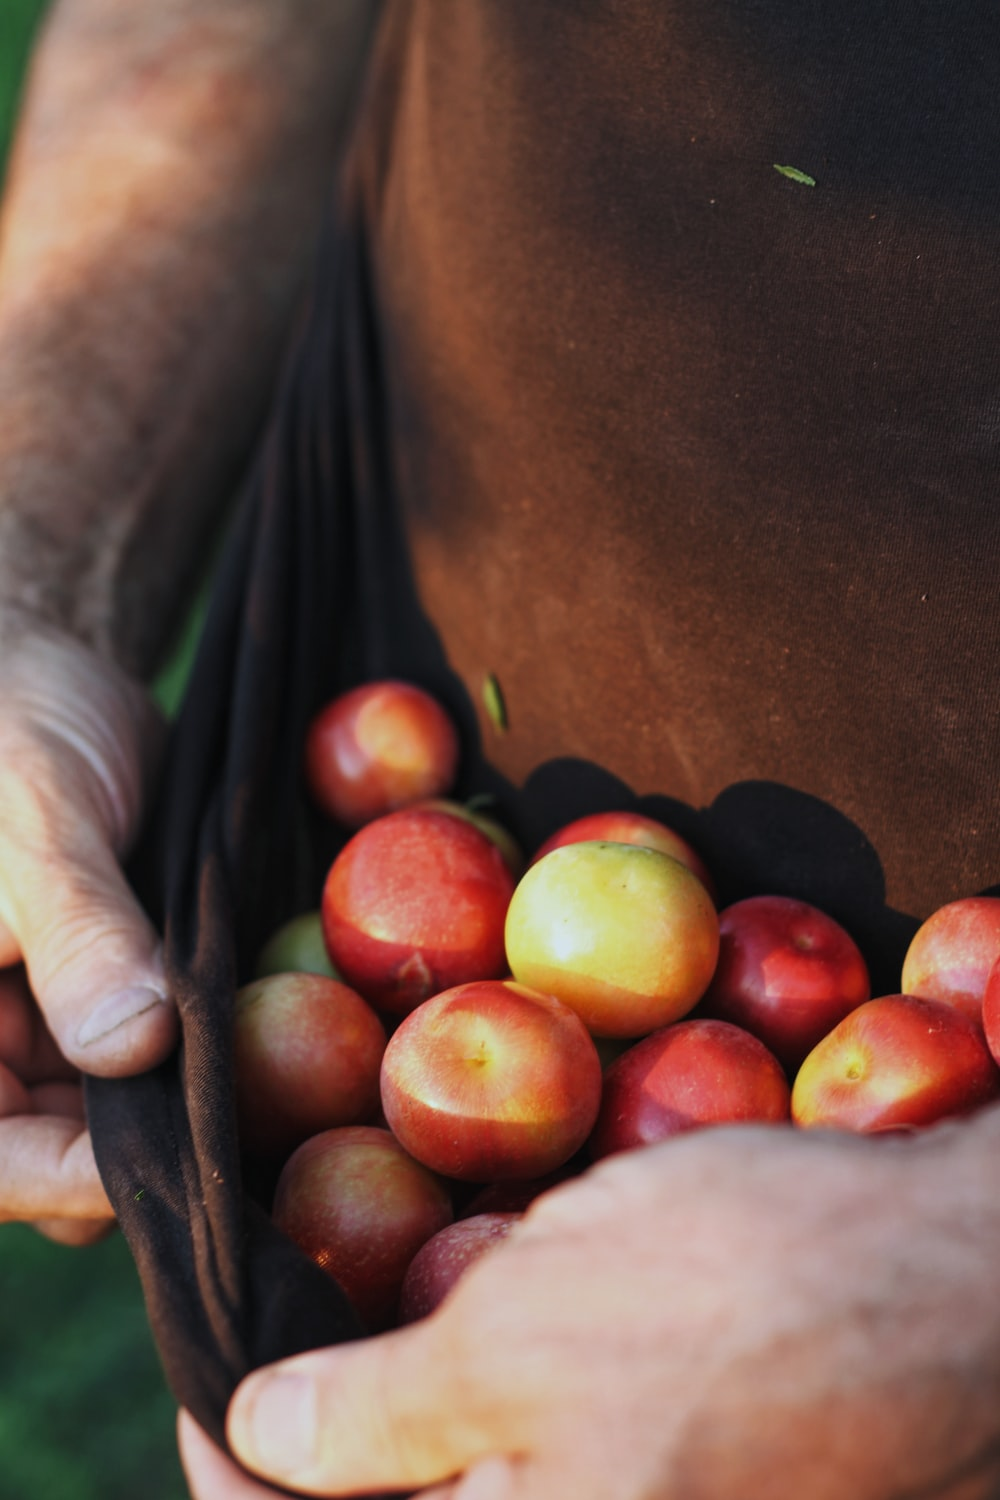 red and yellow apples on brown wooden table